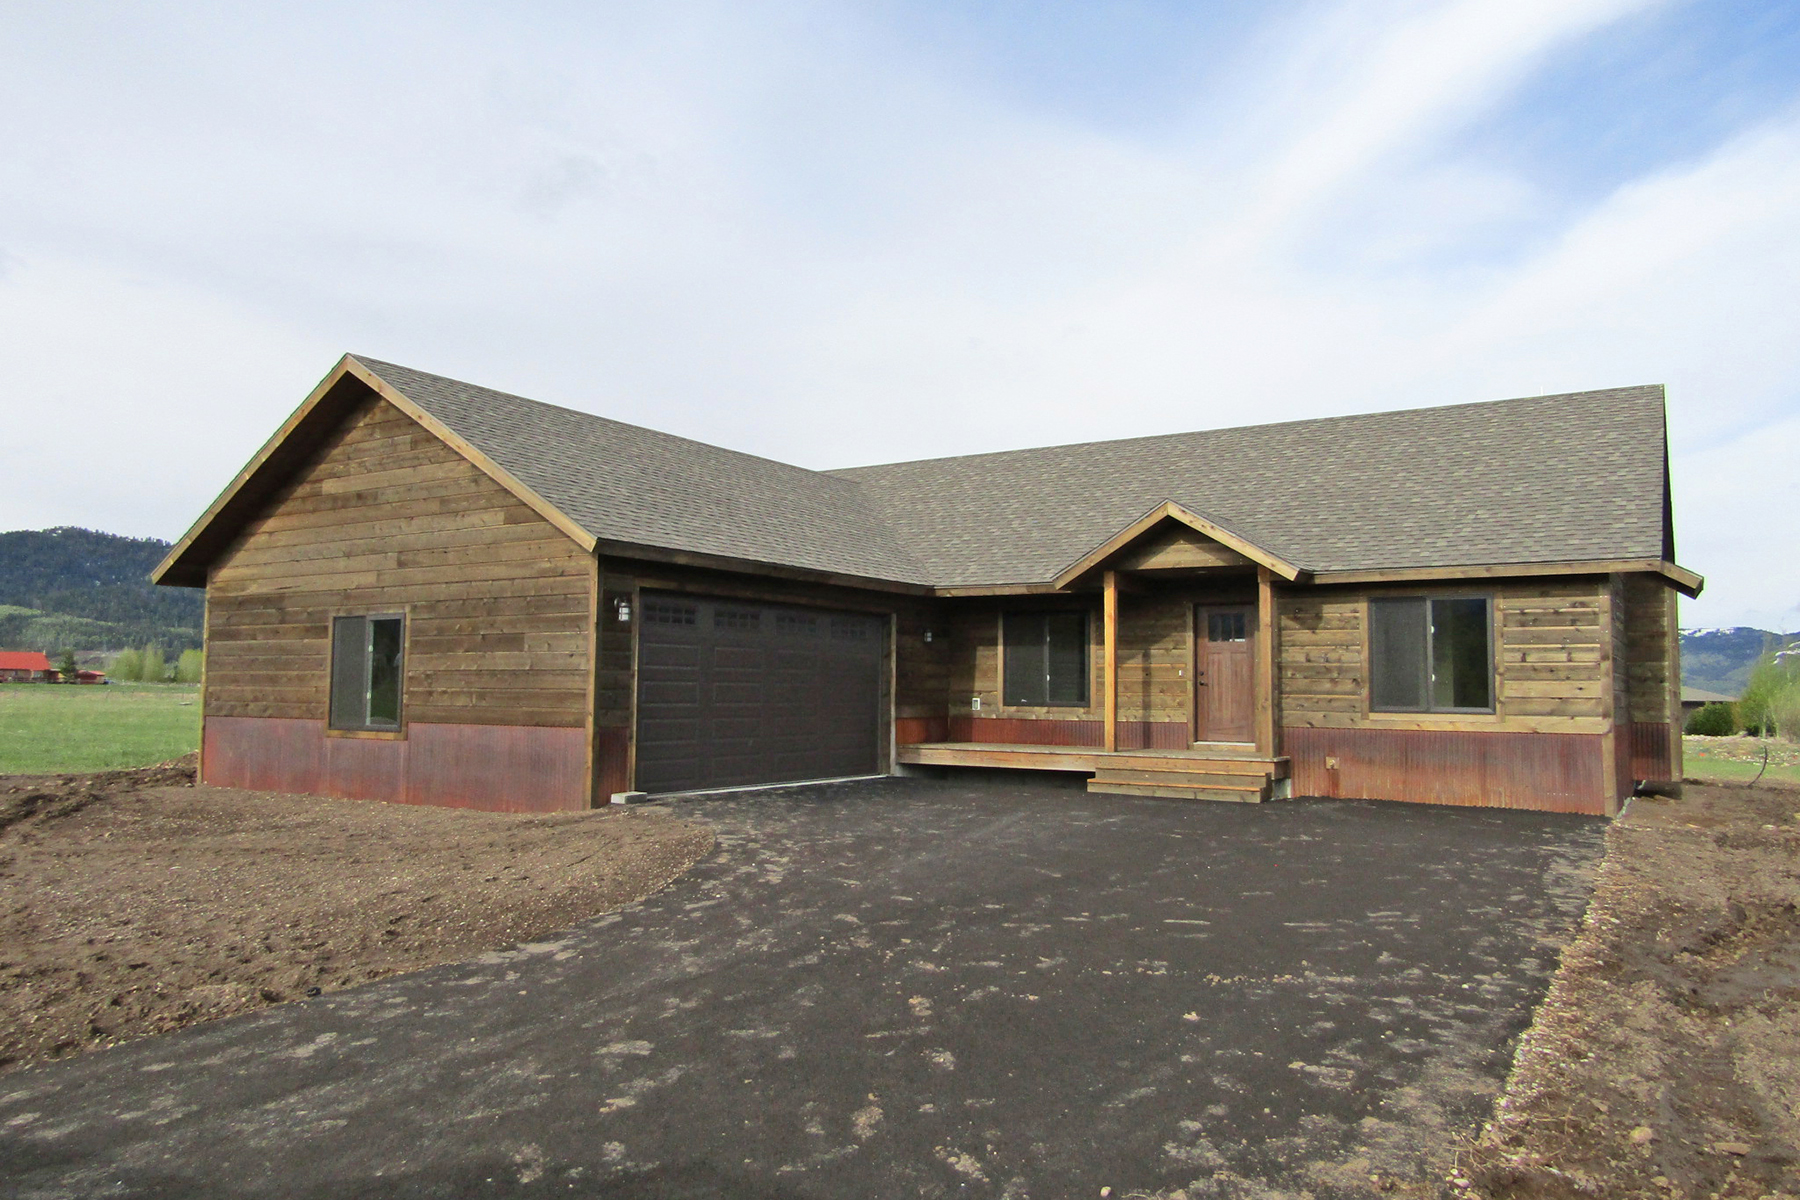 Single Family Home for Active at 9288 Shelby St Victor, Idaho 83455 United States